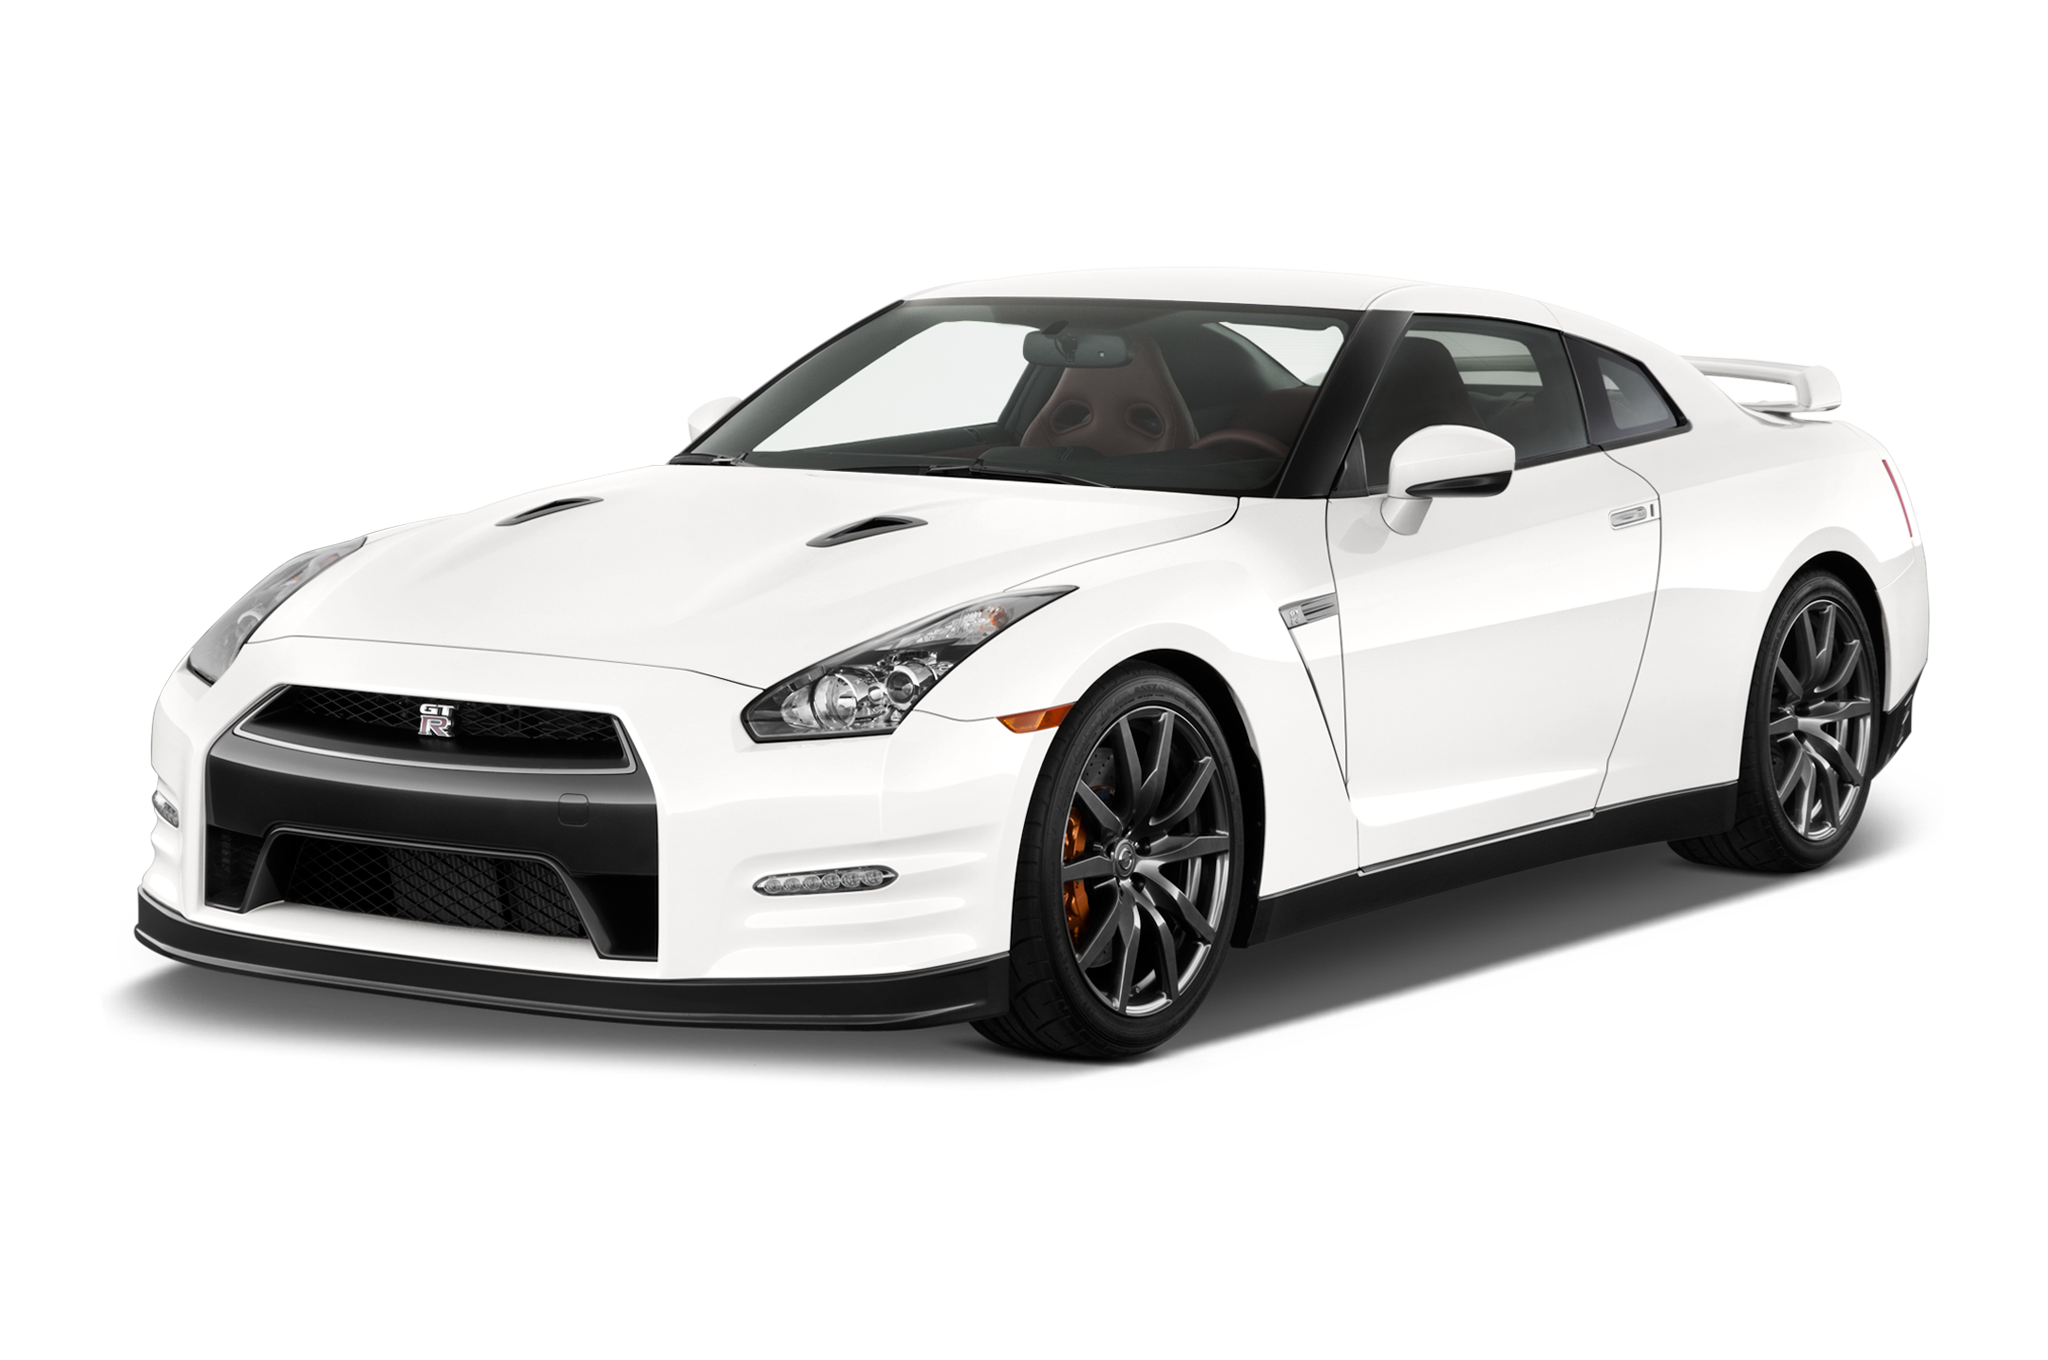 Nissan GT-R I Restyling 2 2013 - 2016 Coupe #6